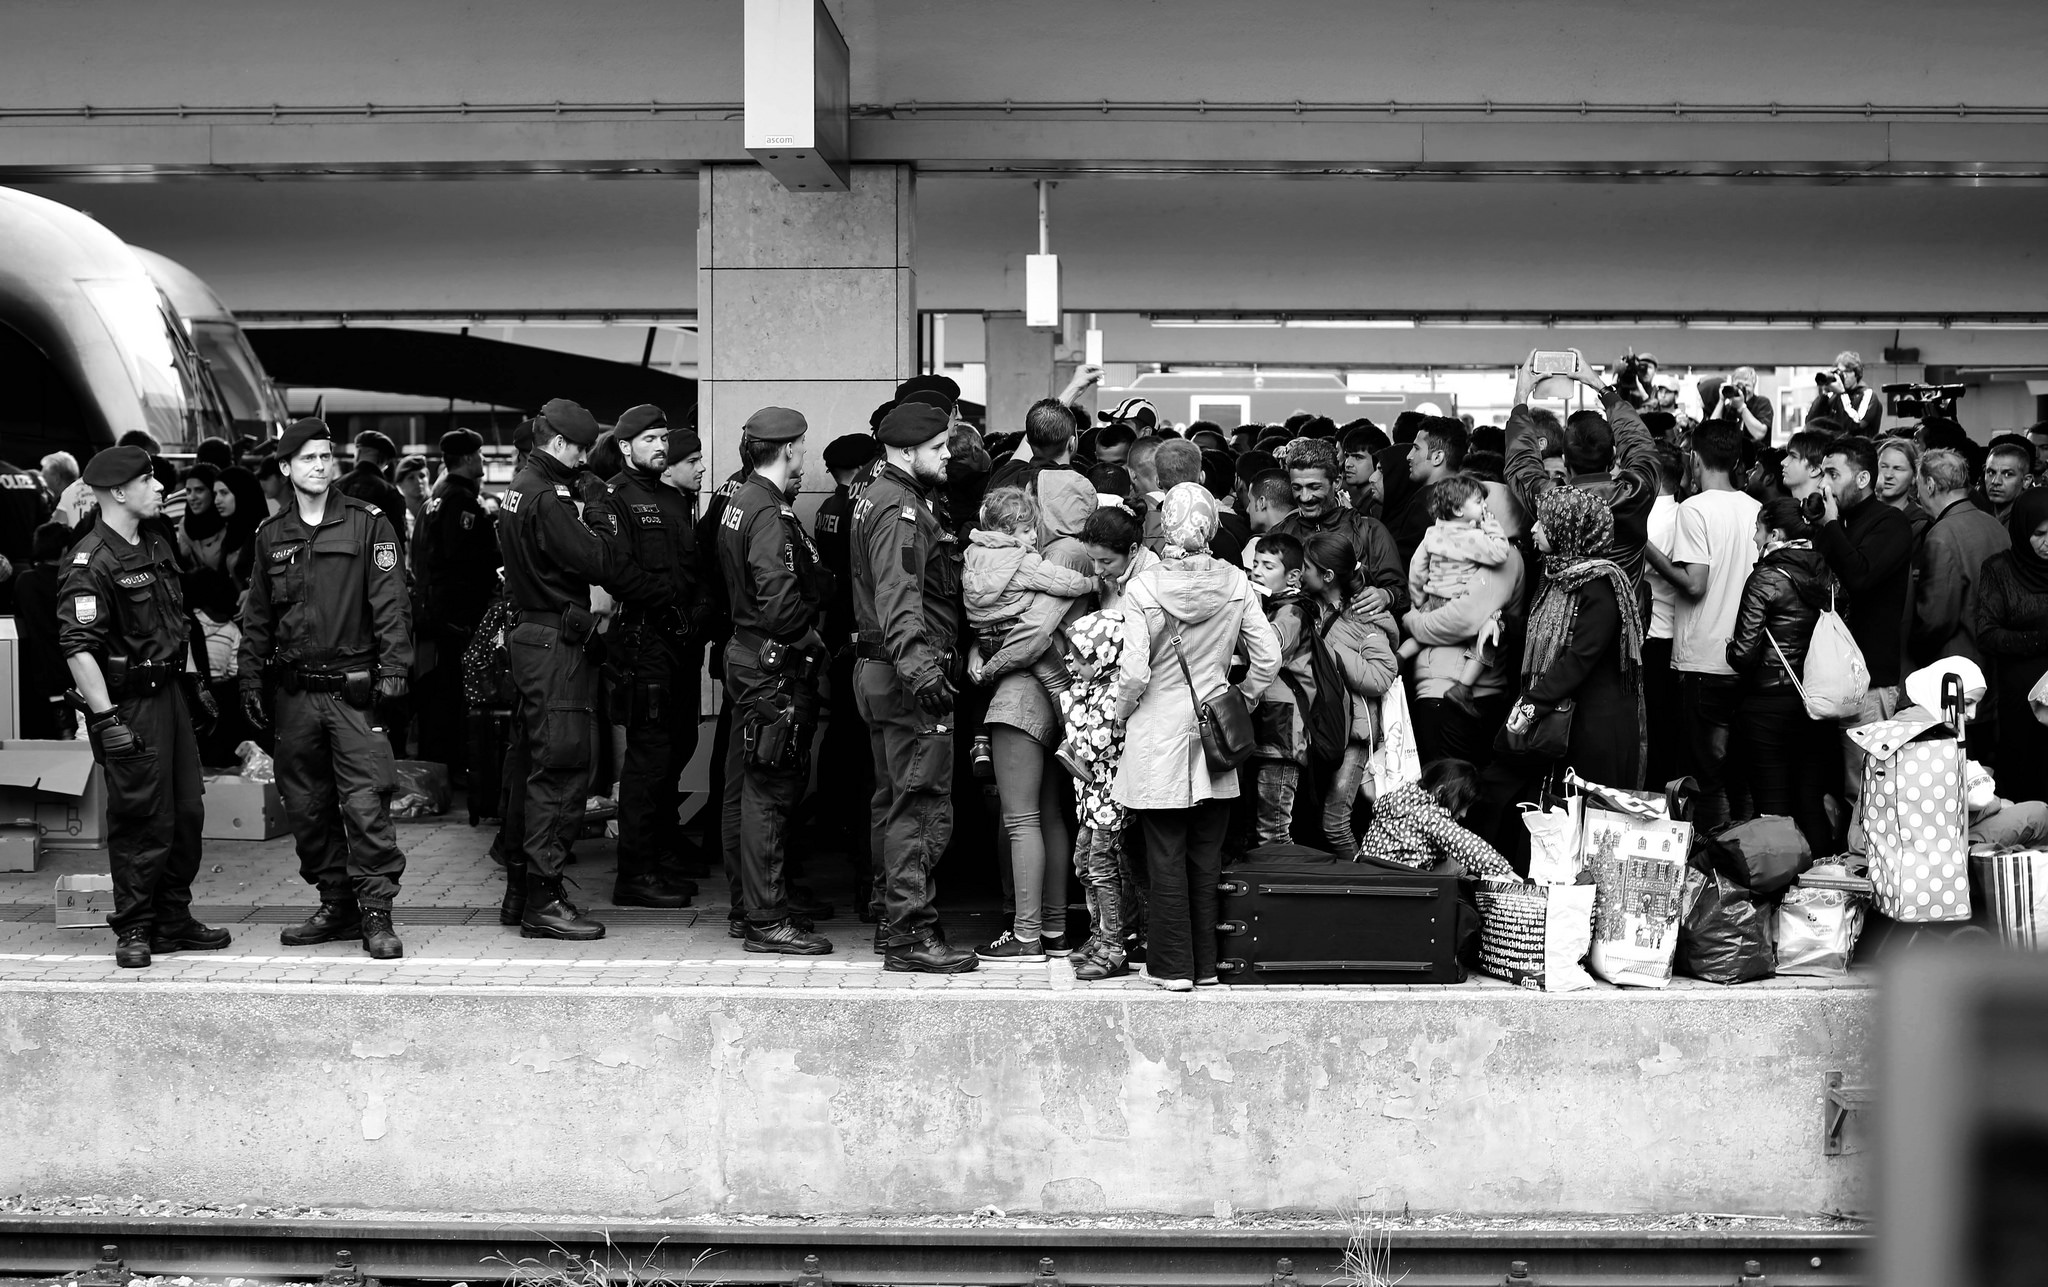 the role of the albanian in the syrian refugee crisis The european migrant crisis arouse through the rising numbers of refugees from  war-torn and oppressed  europe's role  in such places as eritrea, nigeria,  afghanistan, iraq, palestine, syria, albania (also a high birth rate in this muslim.